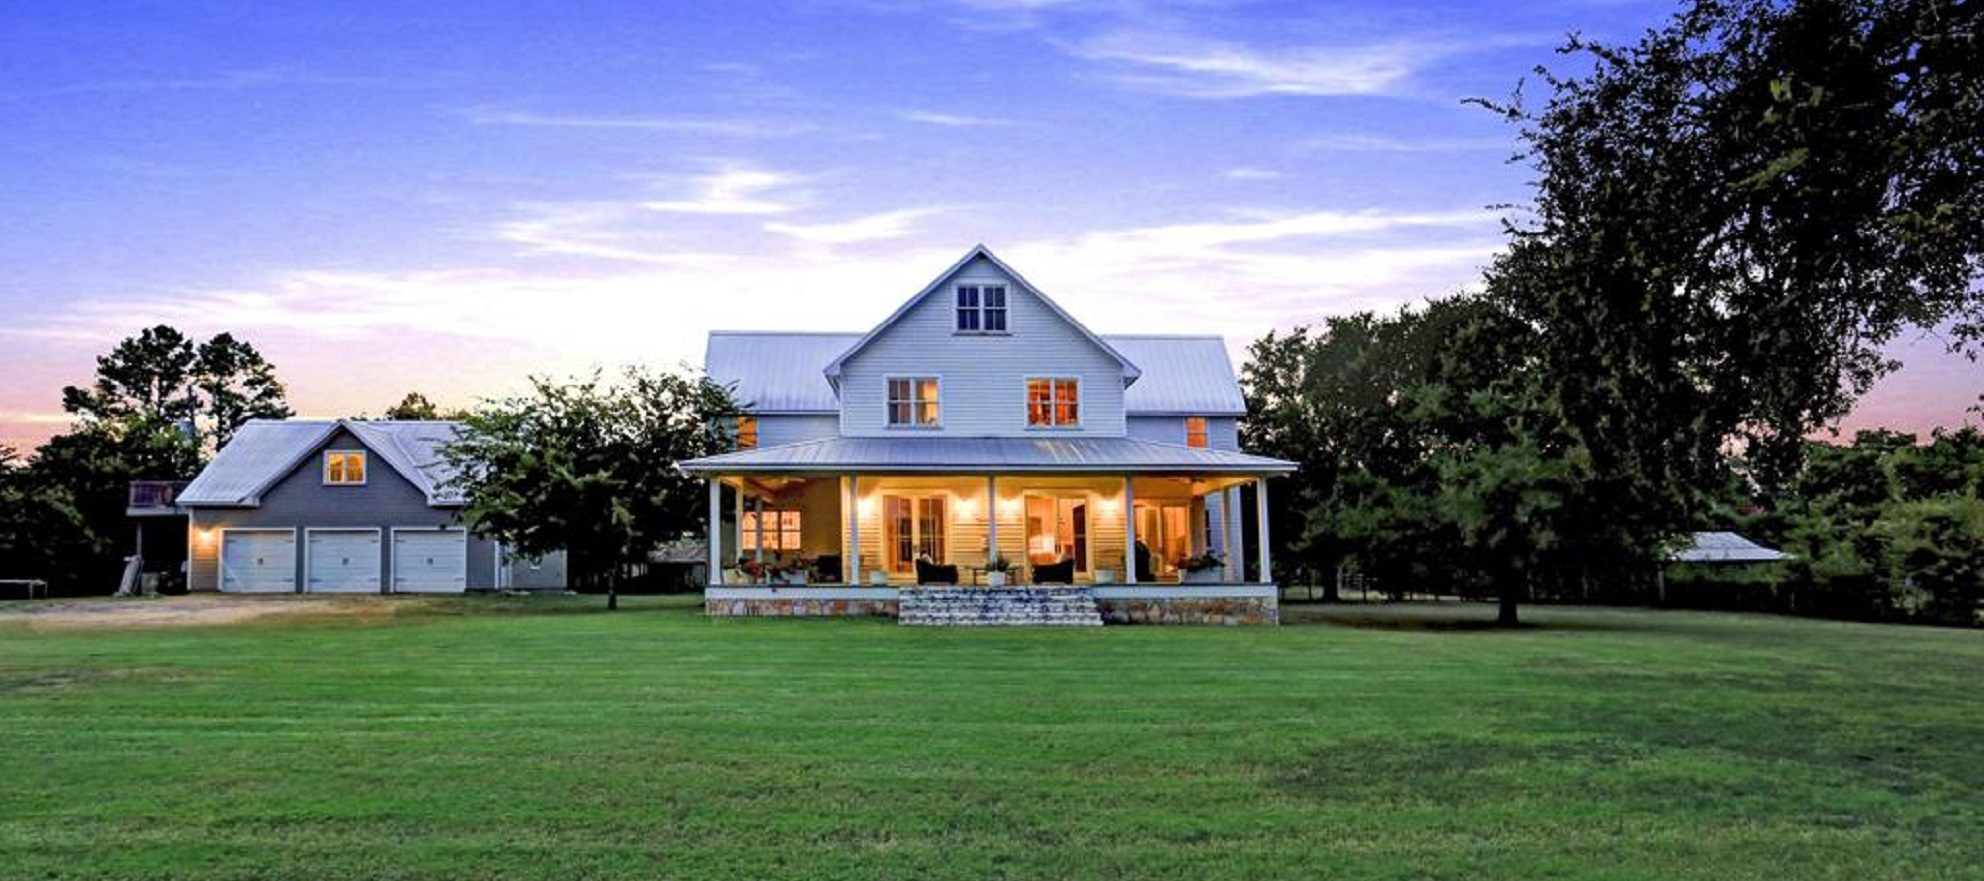 SMARTePLANS listing: rustic farmhouse on more than three acres